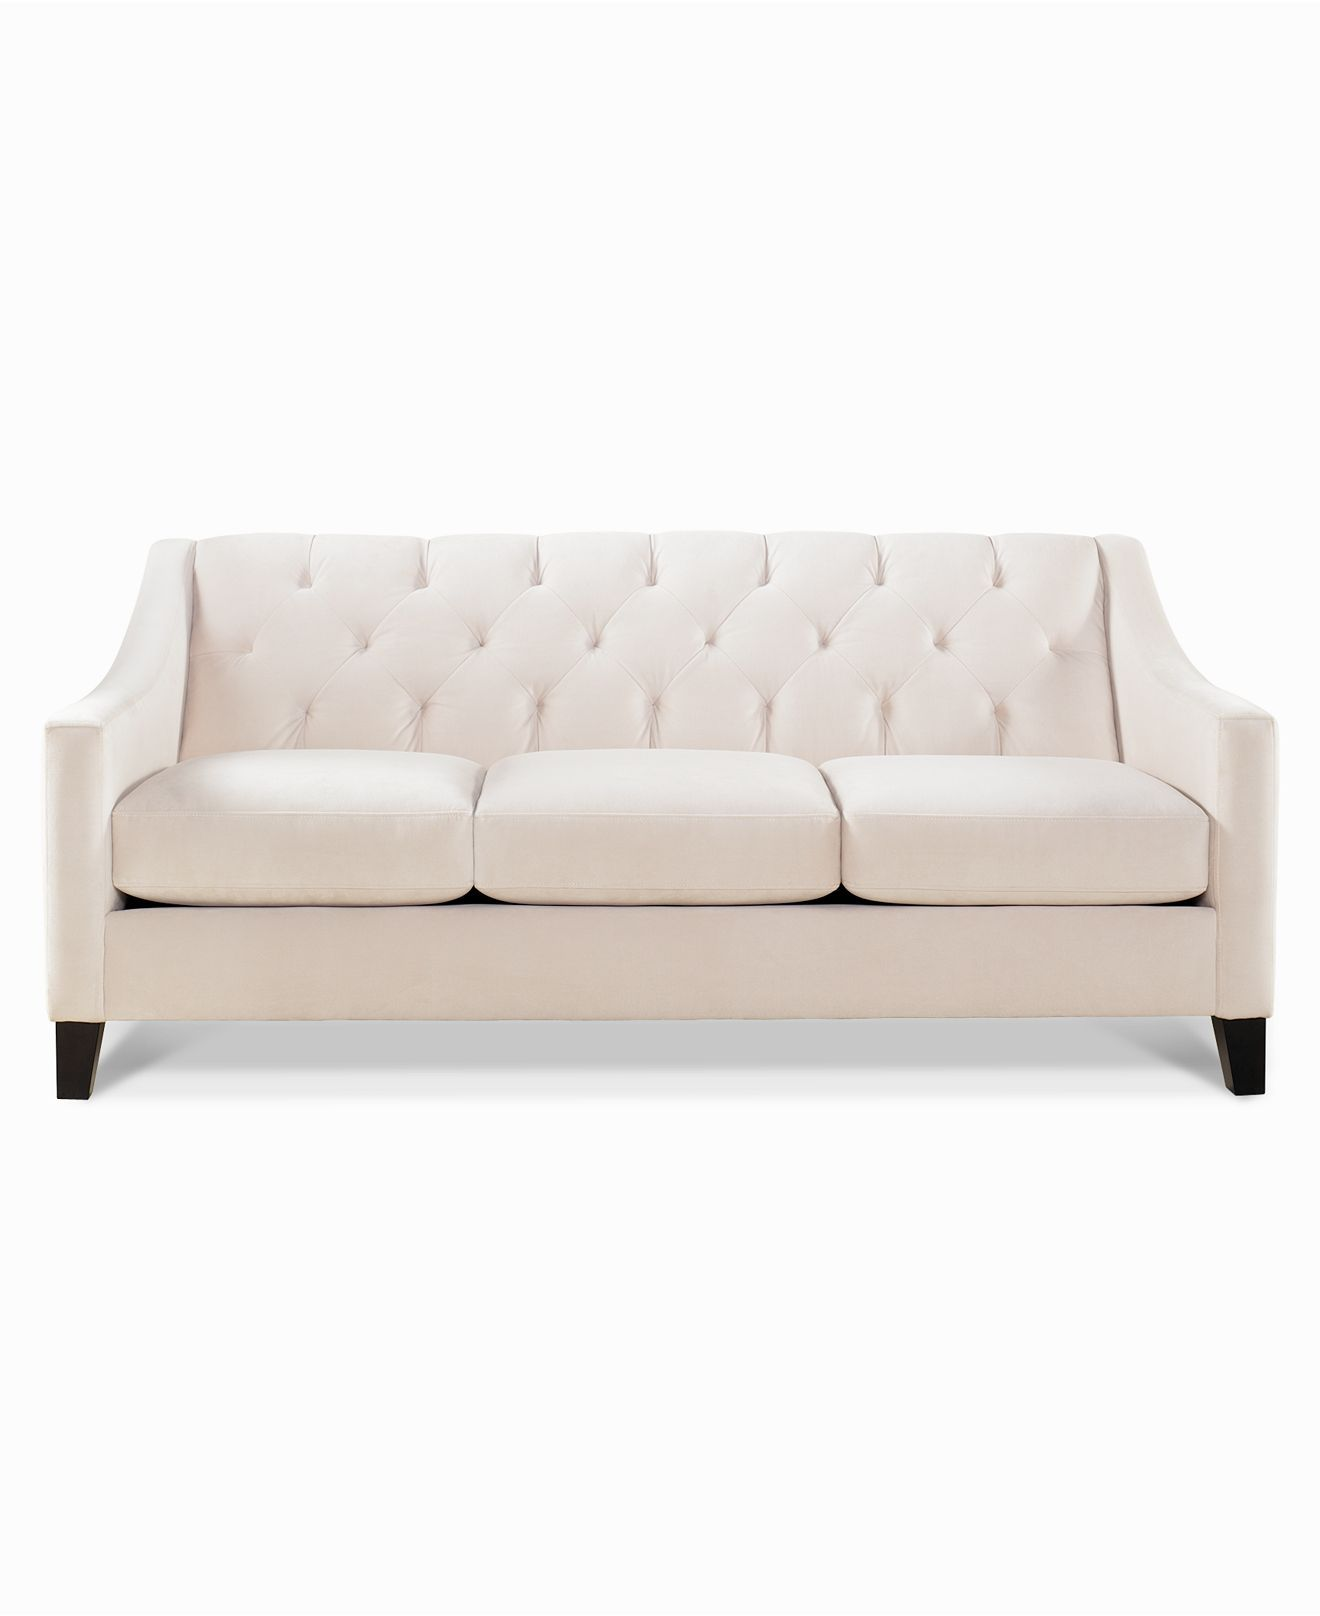 affordable sofa bed metro manila pottery barn carlisle with chaise chloe living classic button tufting and a